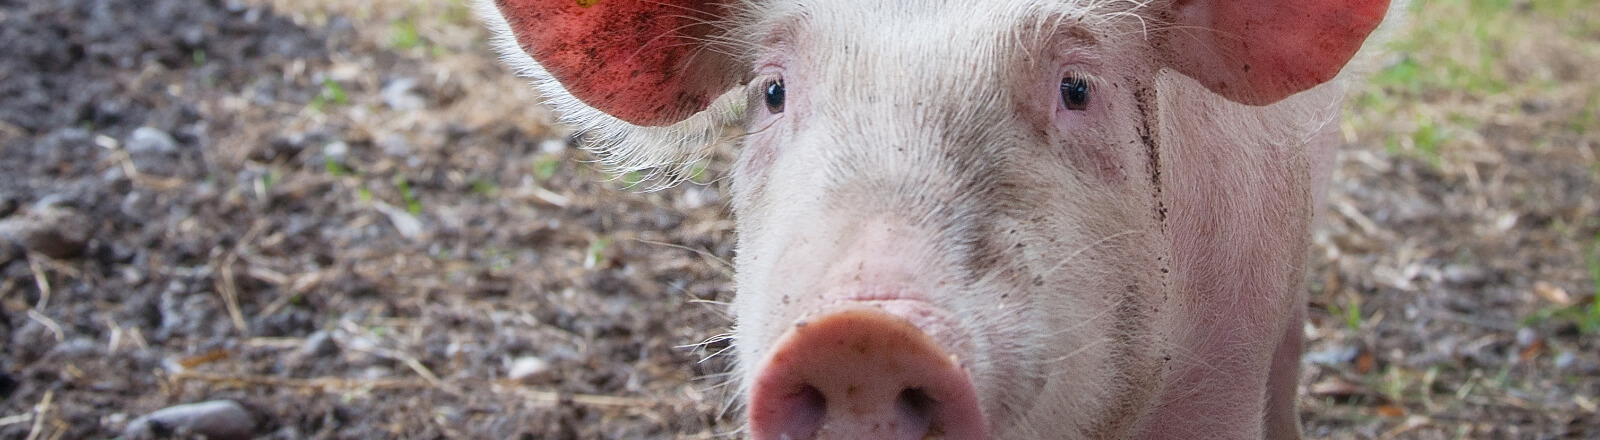 5 talking pigs that taught us valuable business lessons